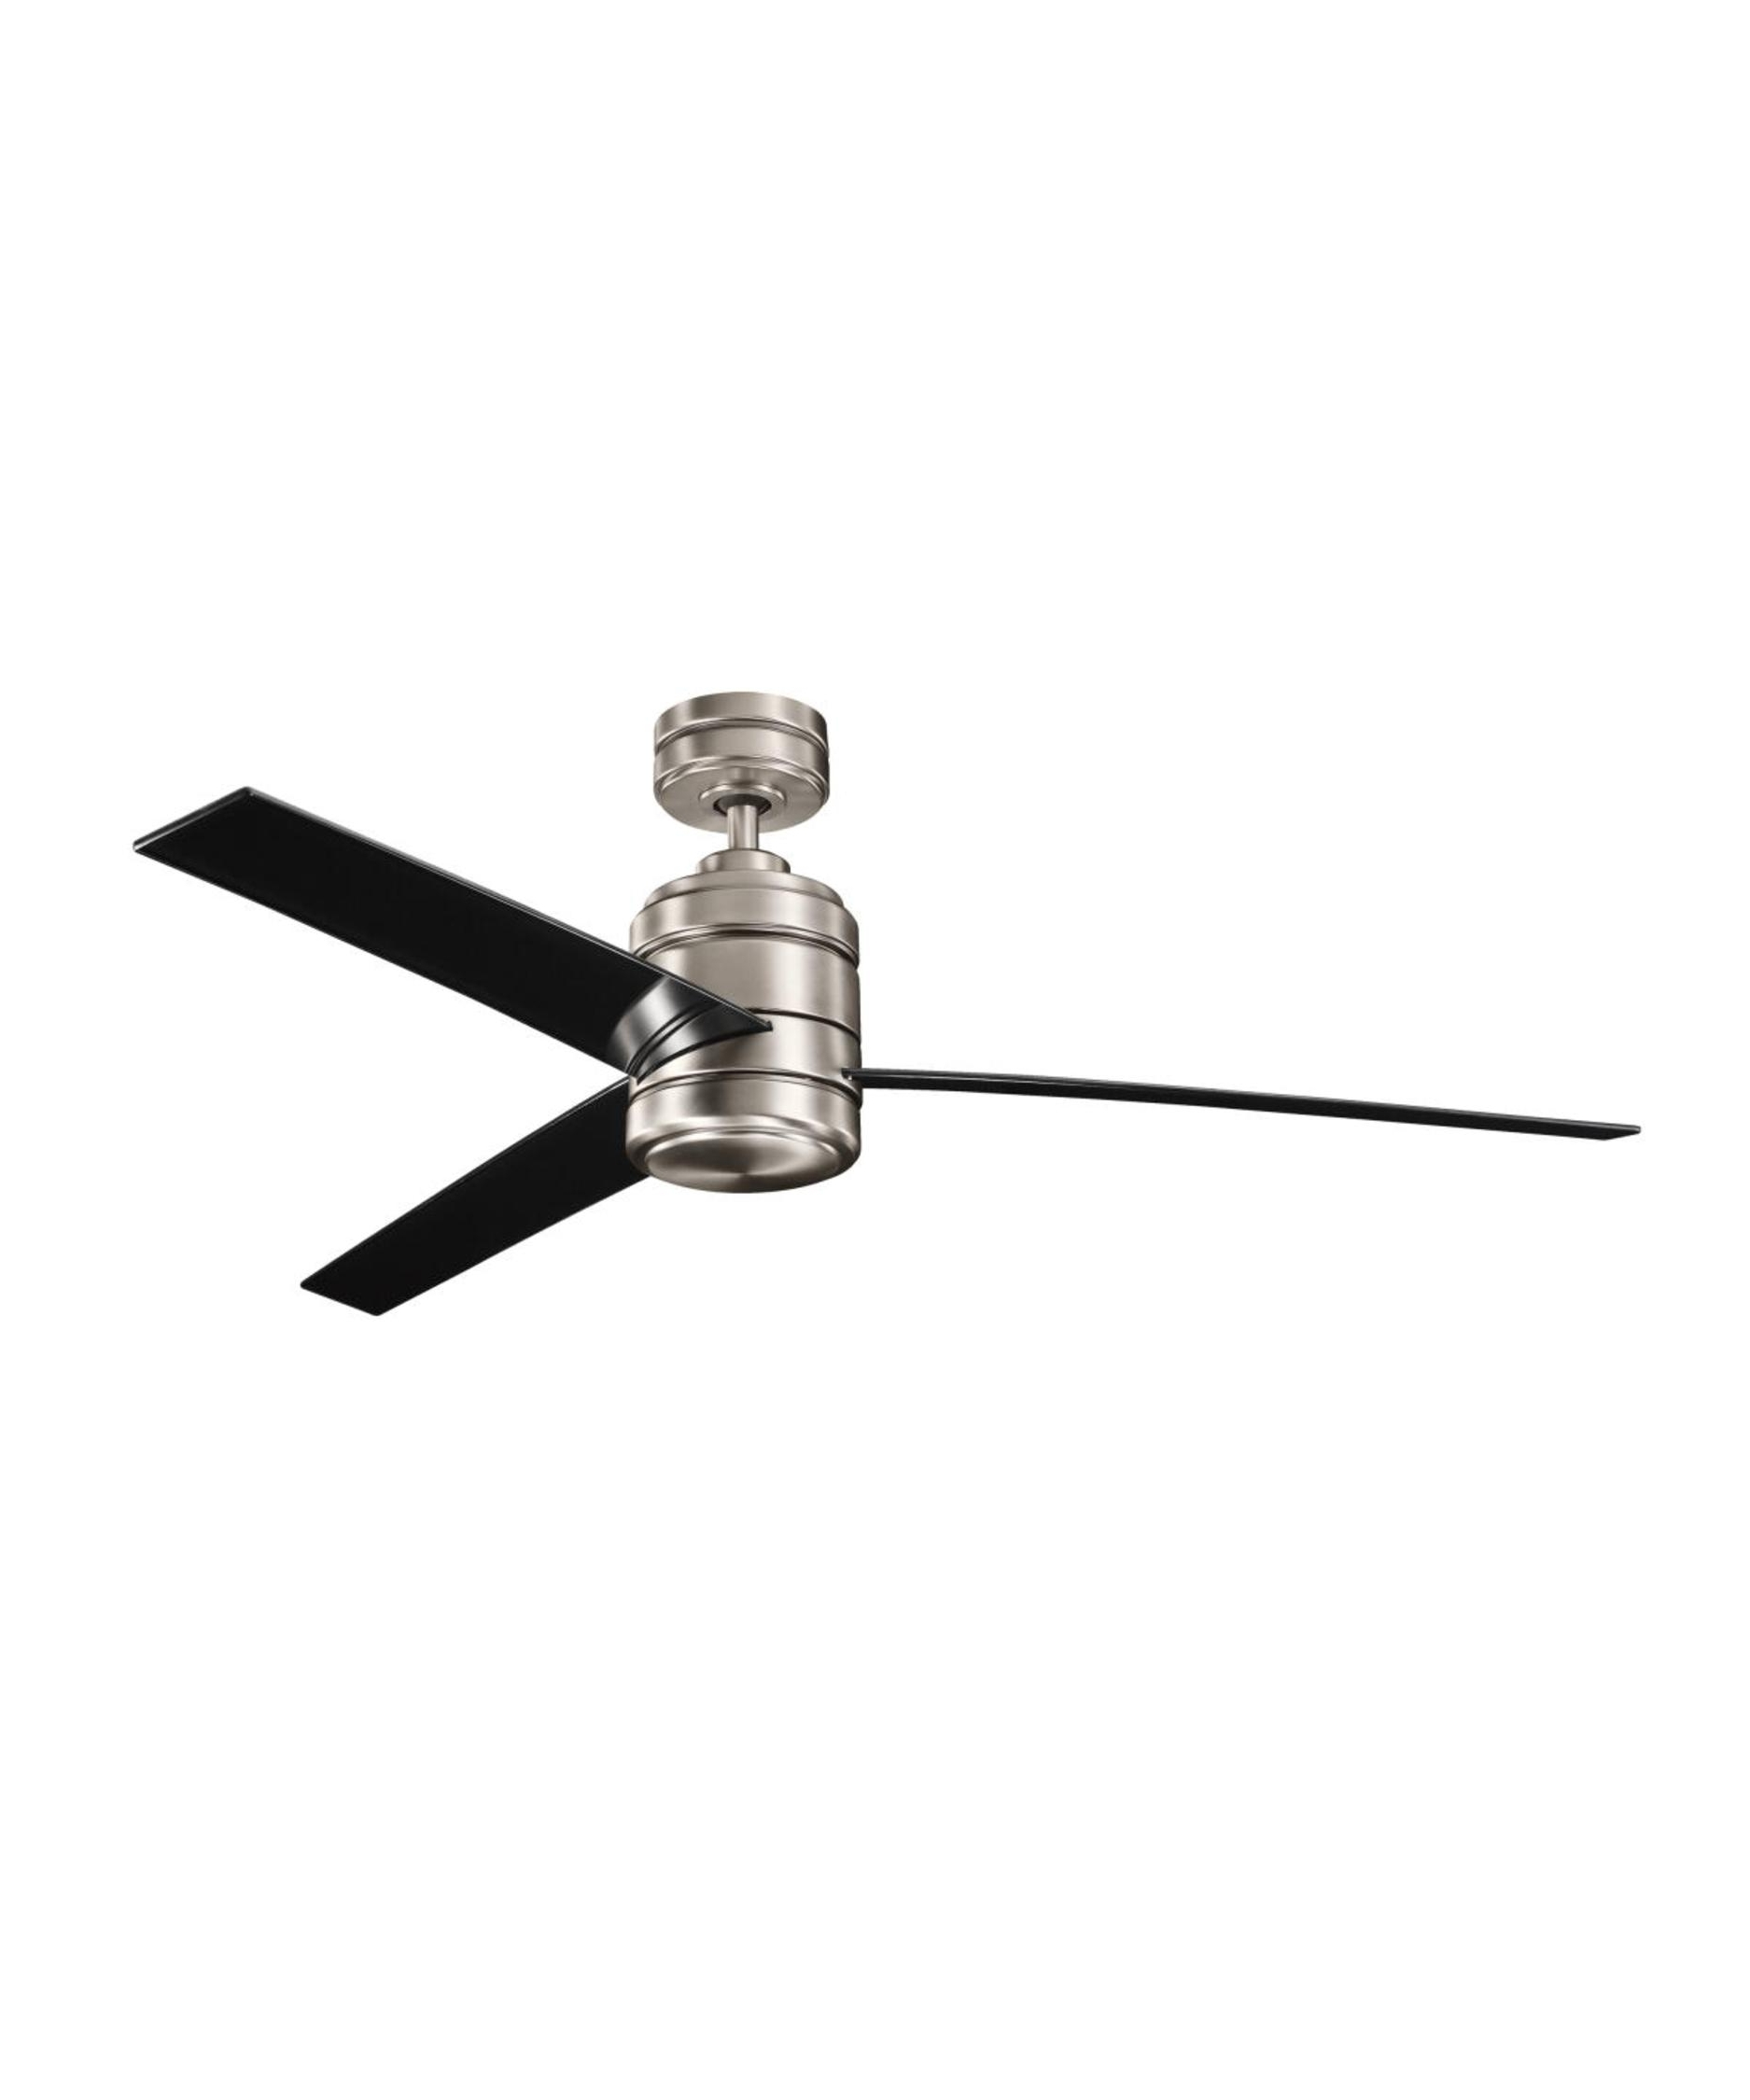 Well Liked Kichler Outdoor Ceiling Fans With Lights Within Kichler 300146 Arkwright 58 Inch 3 Blade Ceiling Fan (View 20 of 20)